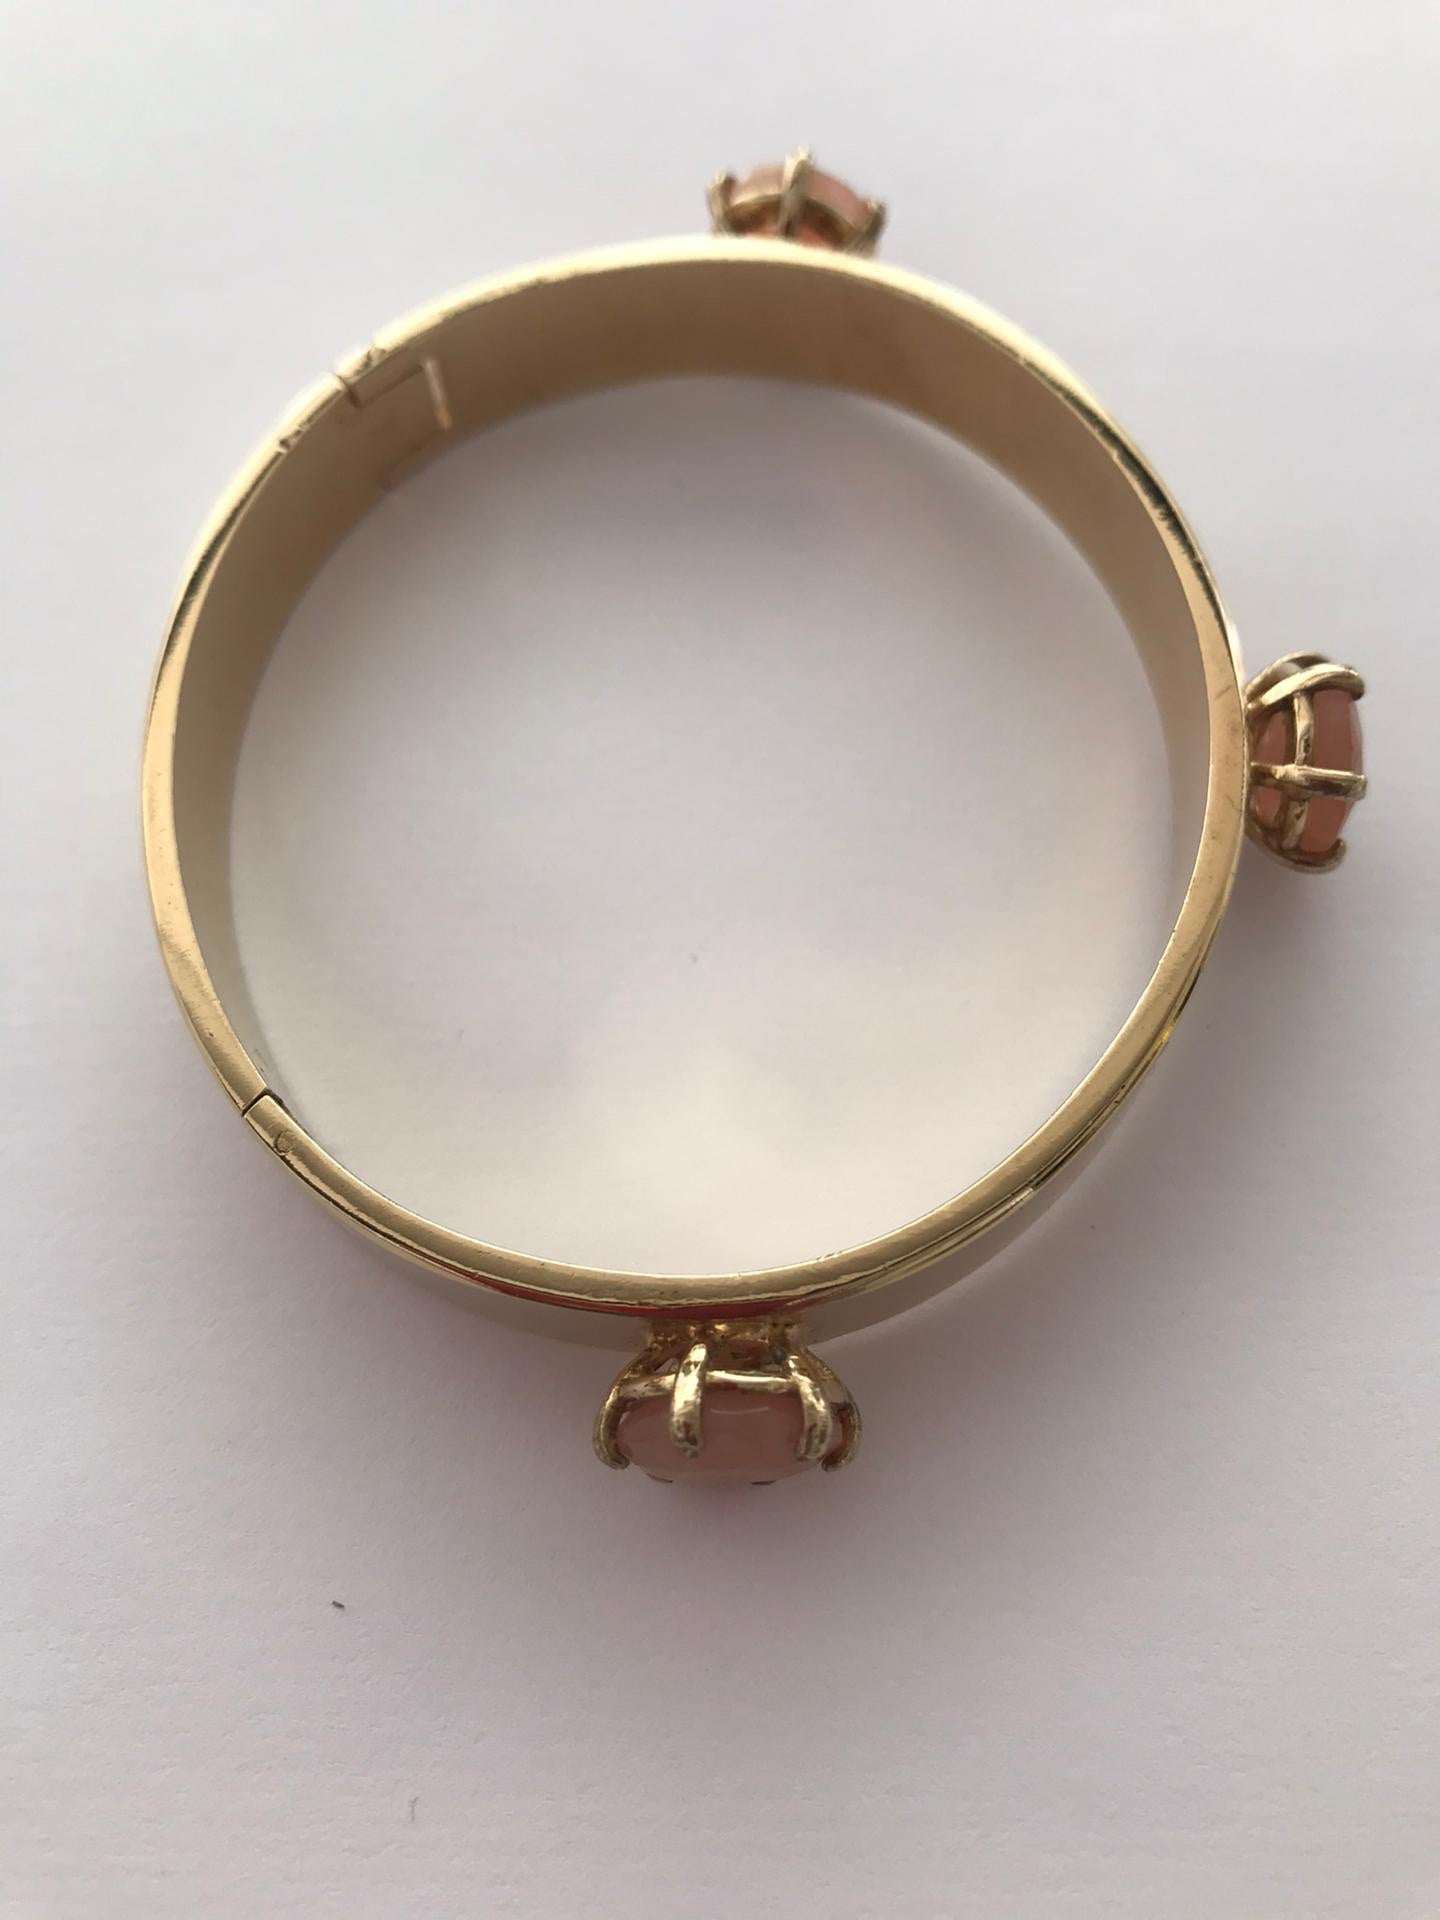 Wouters & Hendrix - gold plated silver bracelet with pink agate